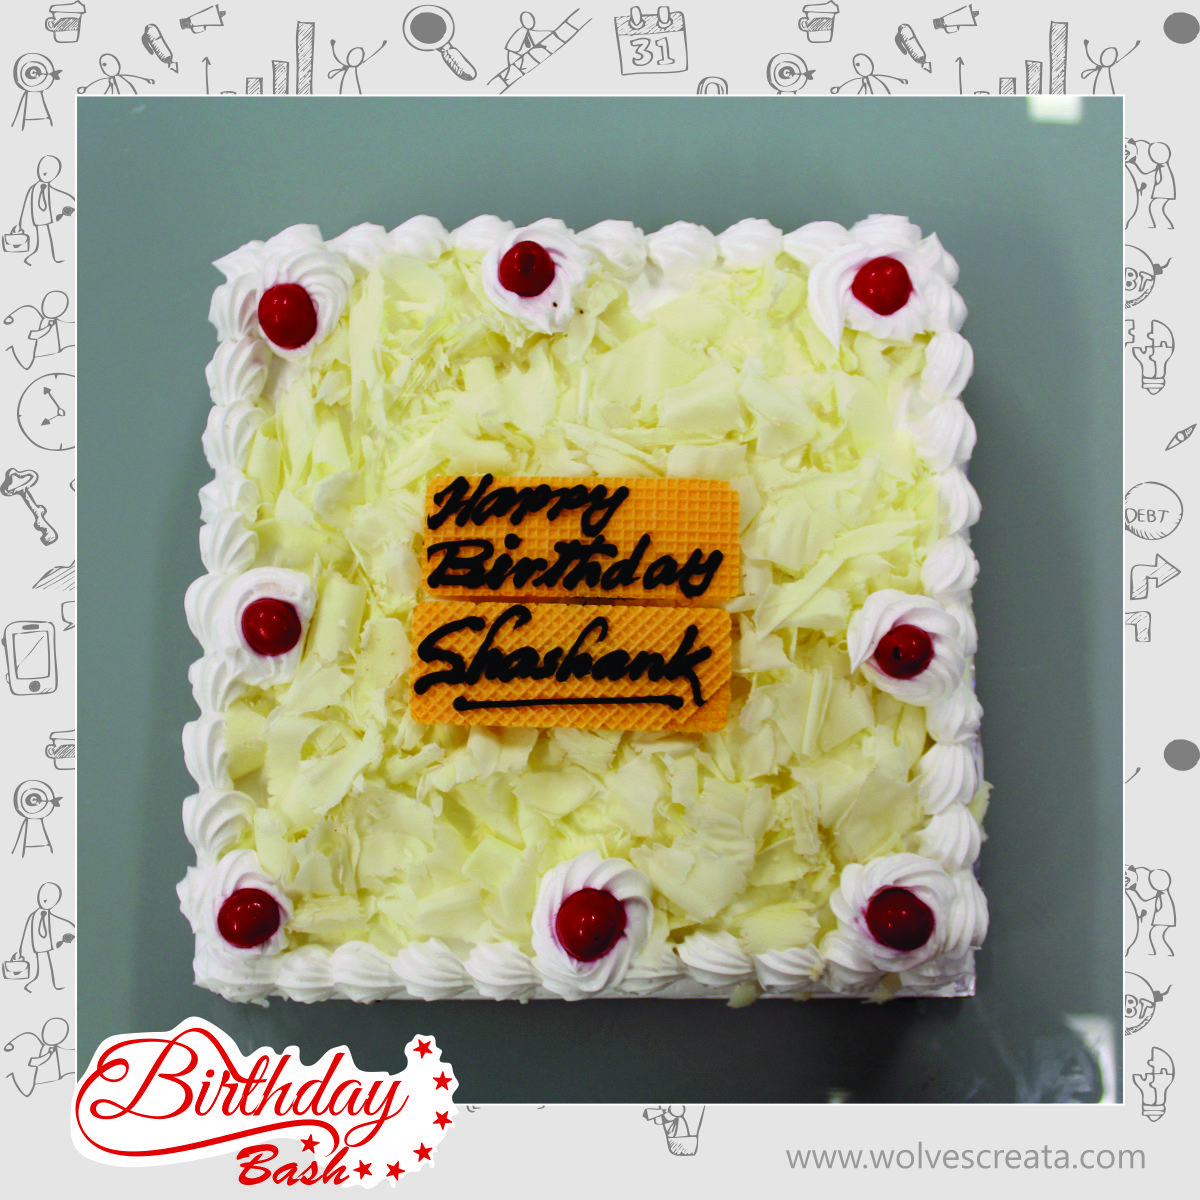 Happy Birthday Shashank May You Have A Blessed And Miraculous Year Ahead Celebration Joy Fun Happybirthday Birthday Celebration Birthday Bash Birthday